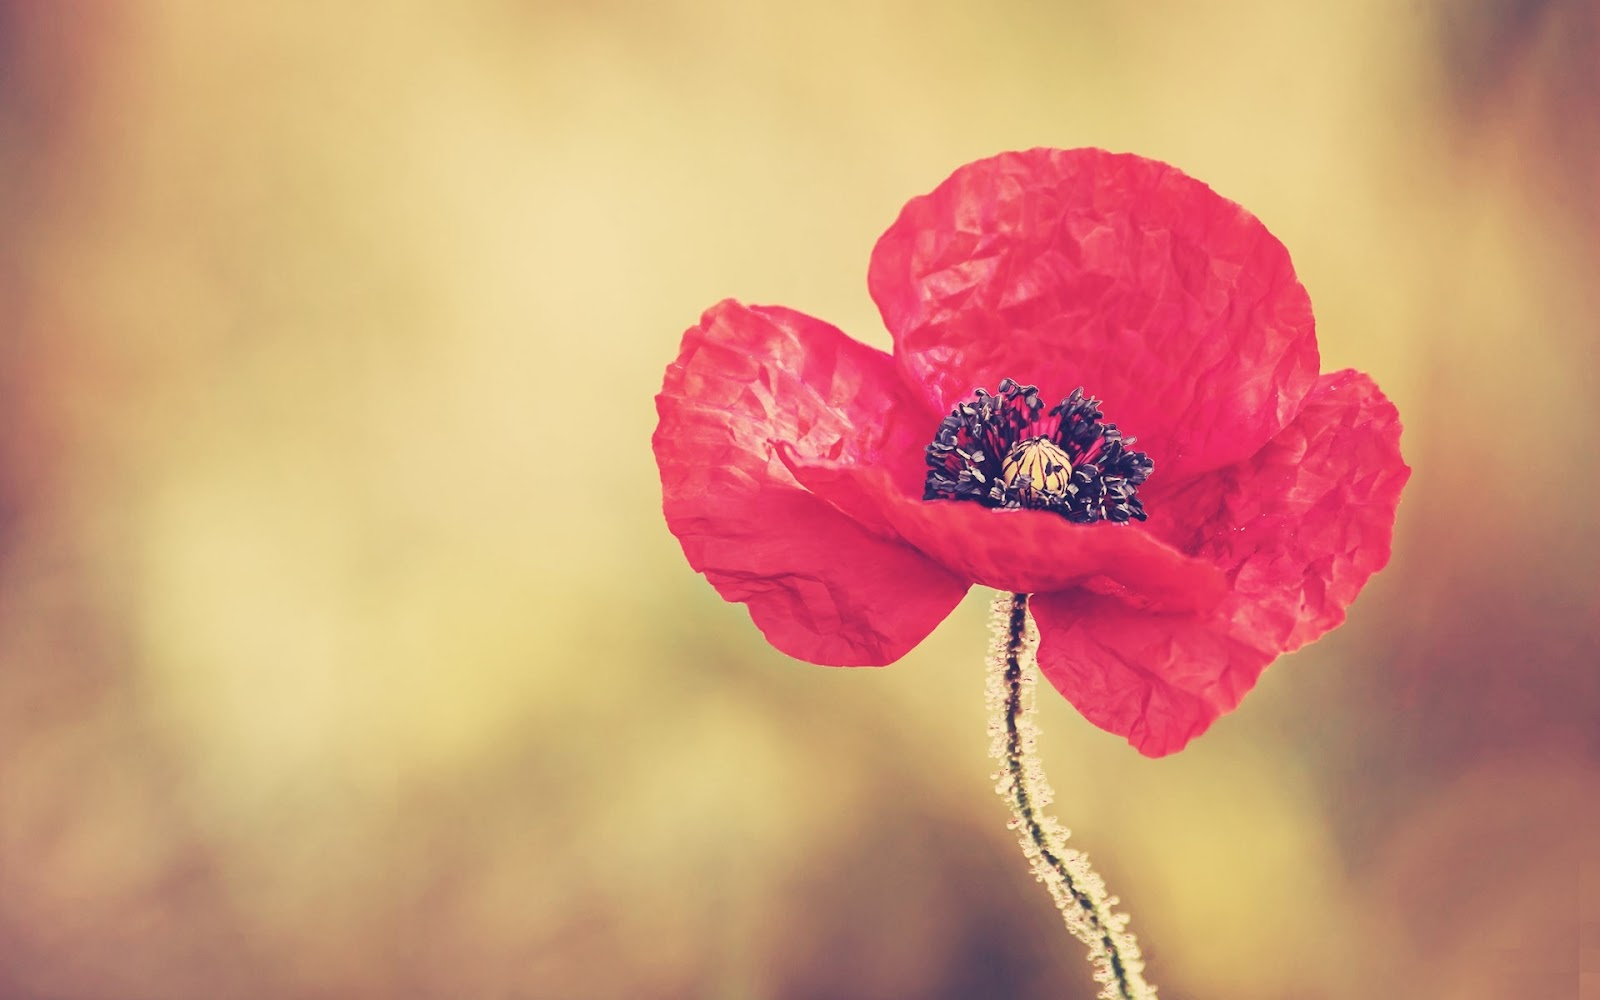 http://1.bp.blogspot.com/-RO1dHwFIicc/UGxrUAF5M9I/AAAAAAAAFH0/QEfVnJAUfPQ/s1600/Red_Poppy_Flower_wallpapers_1920x1200_wallpaperhere.jpg